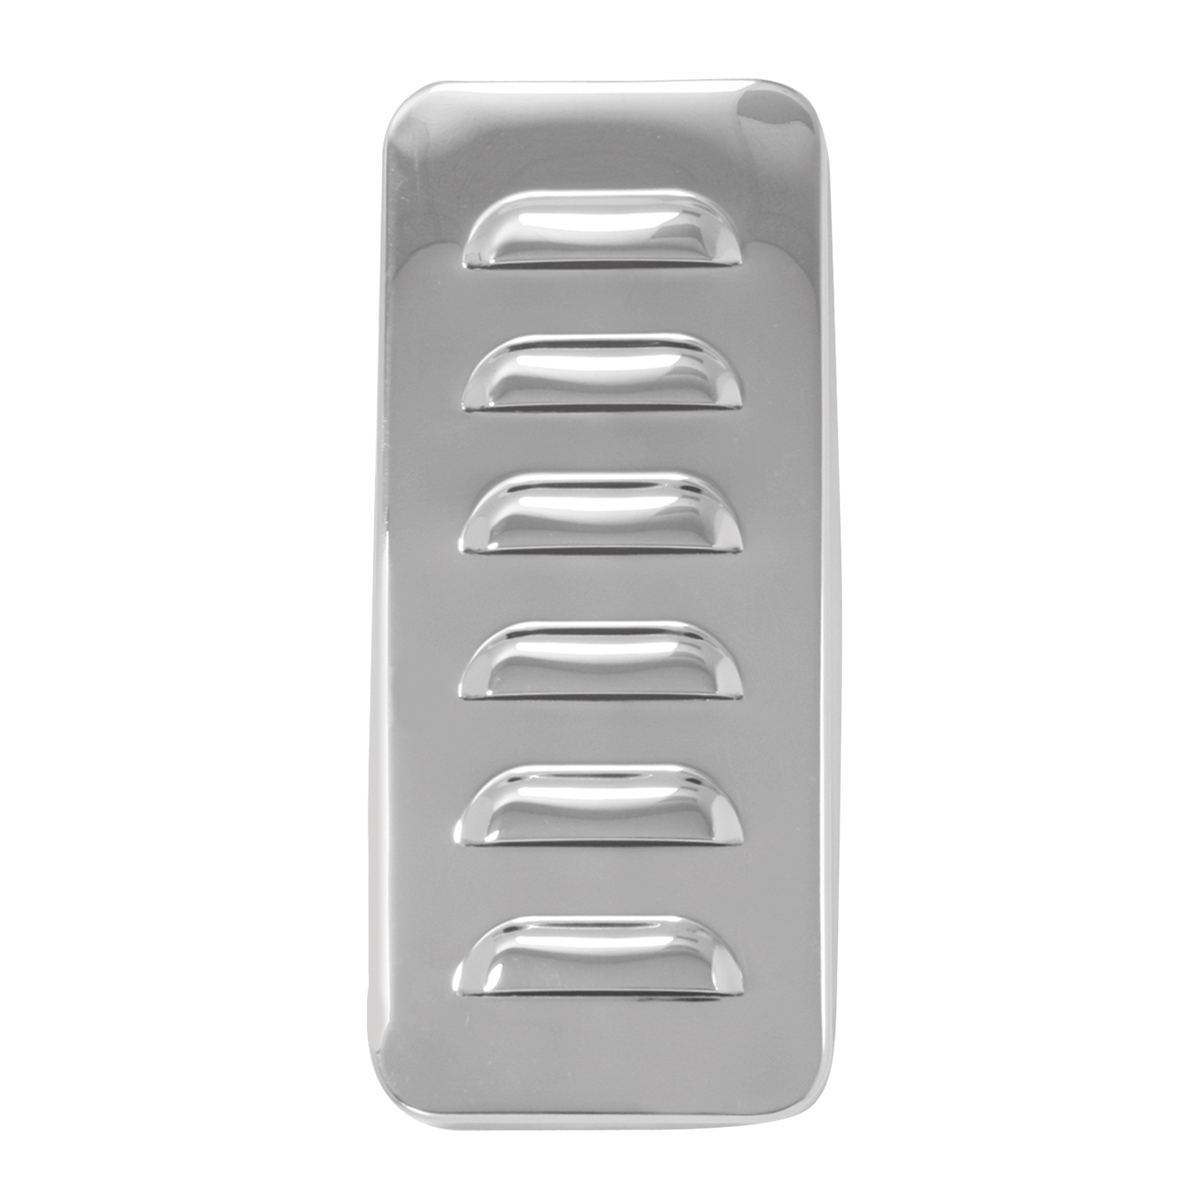 97569 Exterior Vent Door Cover Louver Style for Peterbilt